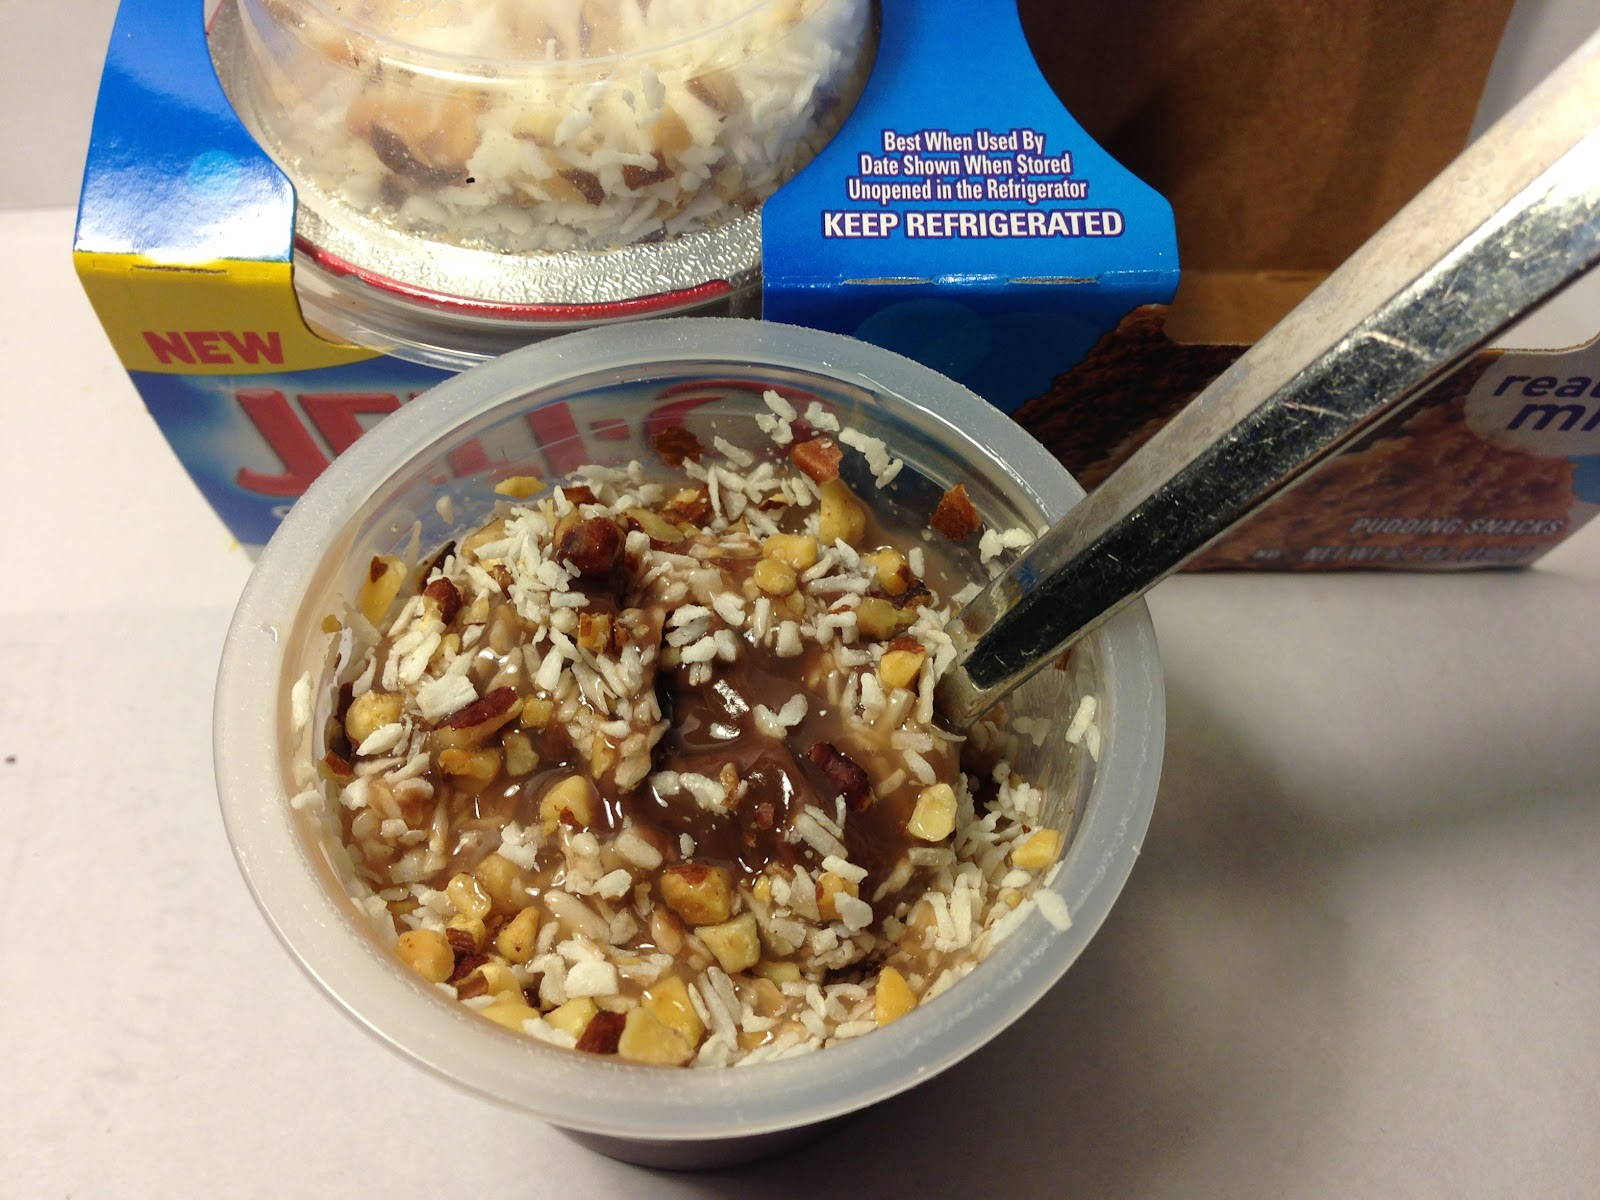 Can You Mix German Chocolate Cake Mix With Pudding